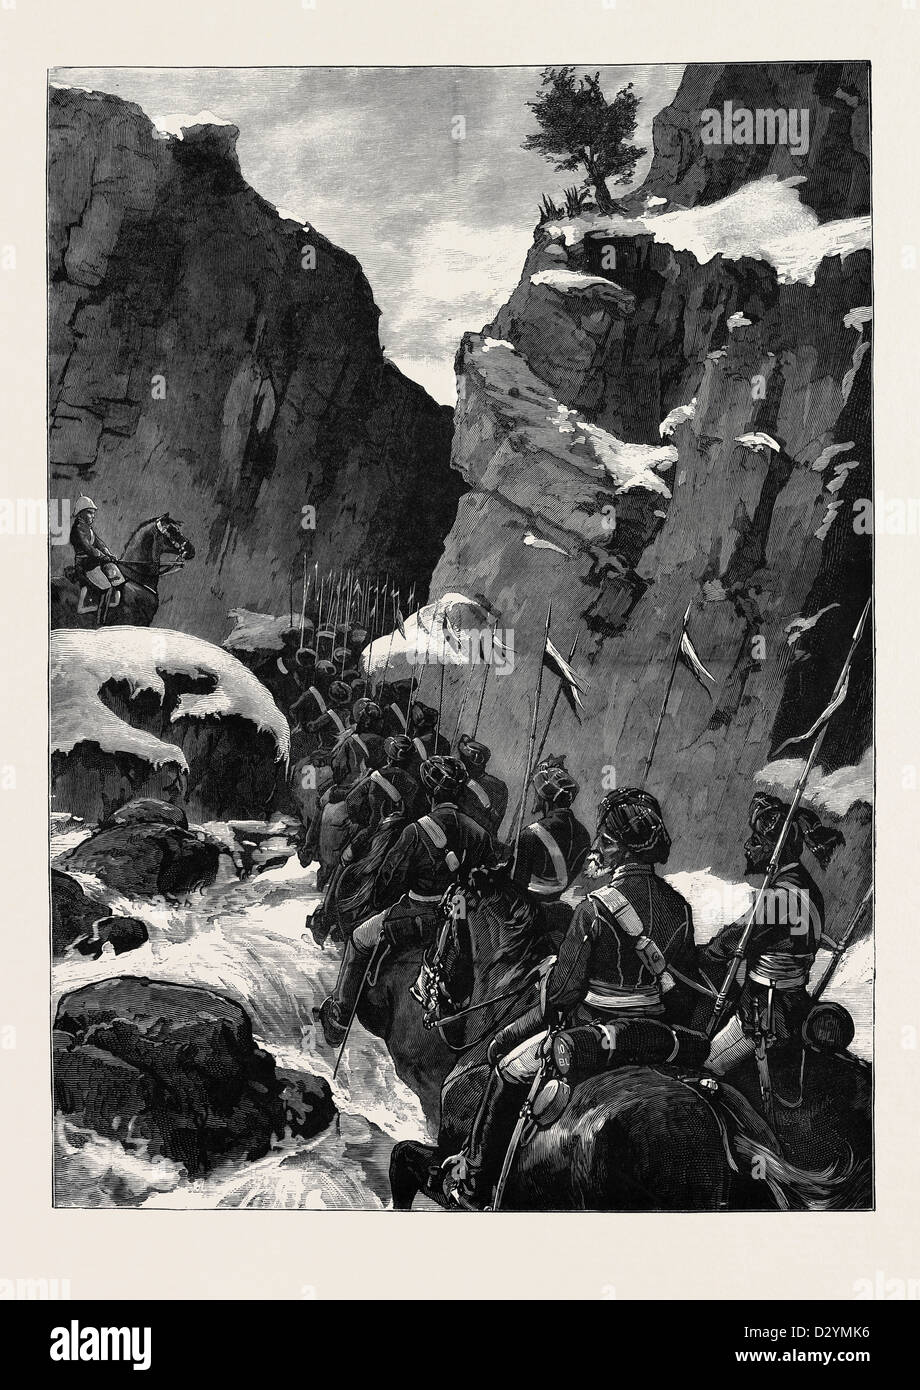 THE AFGHAN WAR: THE 10TH BENGAL LANCERS IN THE JUGDULLUK PASS 1880 - Stock Image